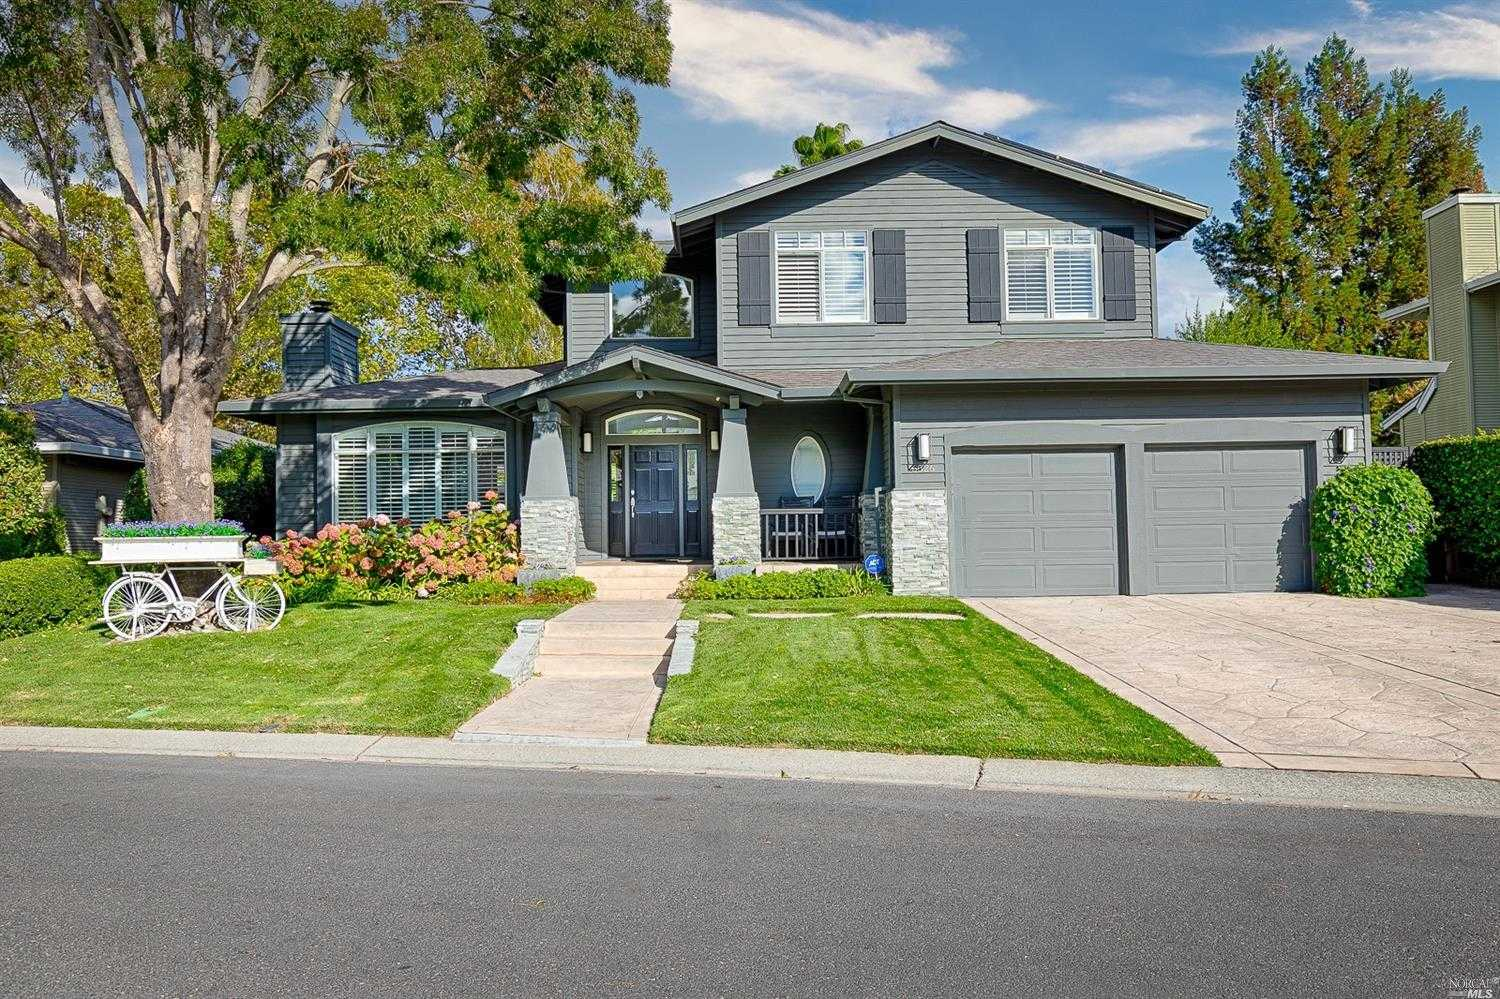 $2,739,000 - 4Br/3Ba -  for Sale in Yountville